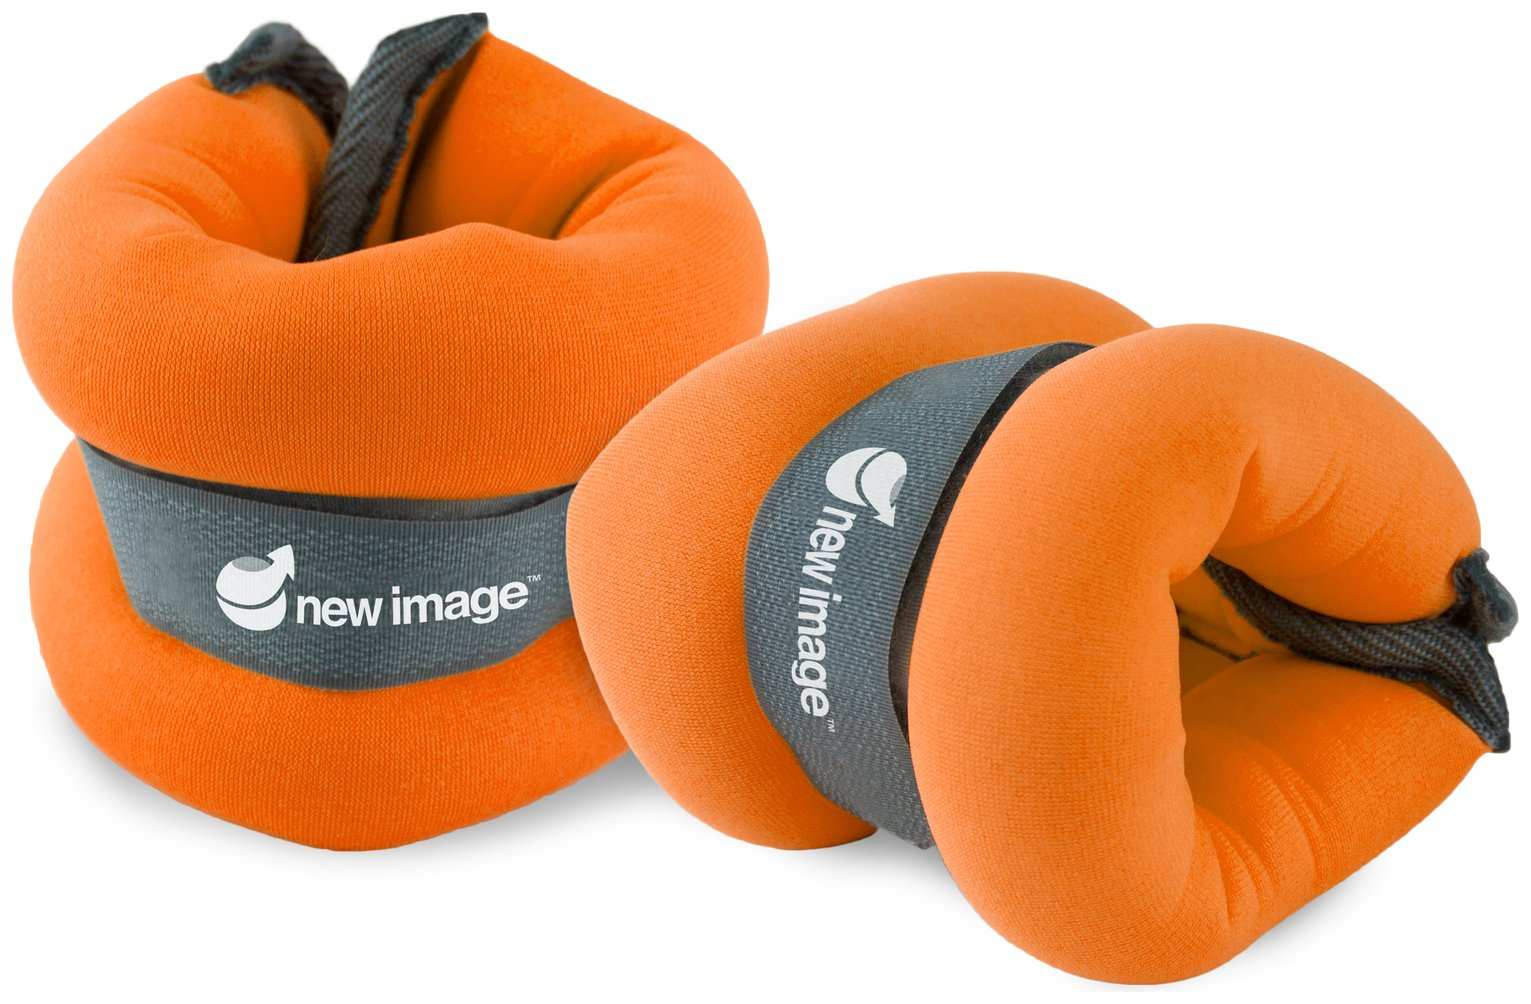 New Image Pair of Wrist Weights - 1kg